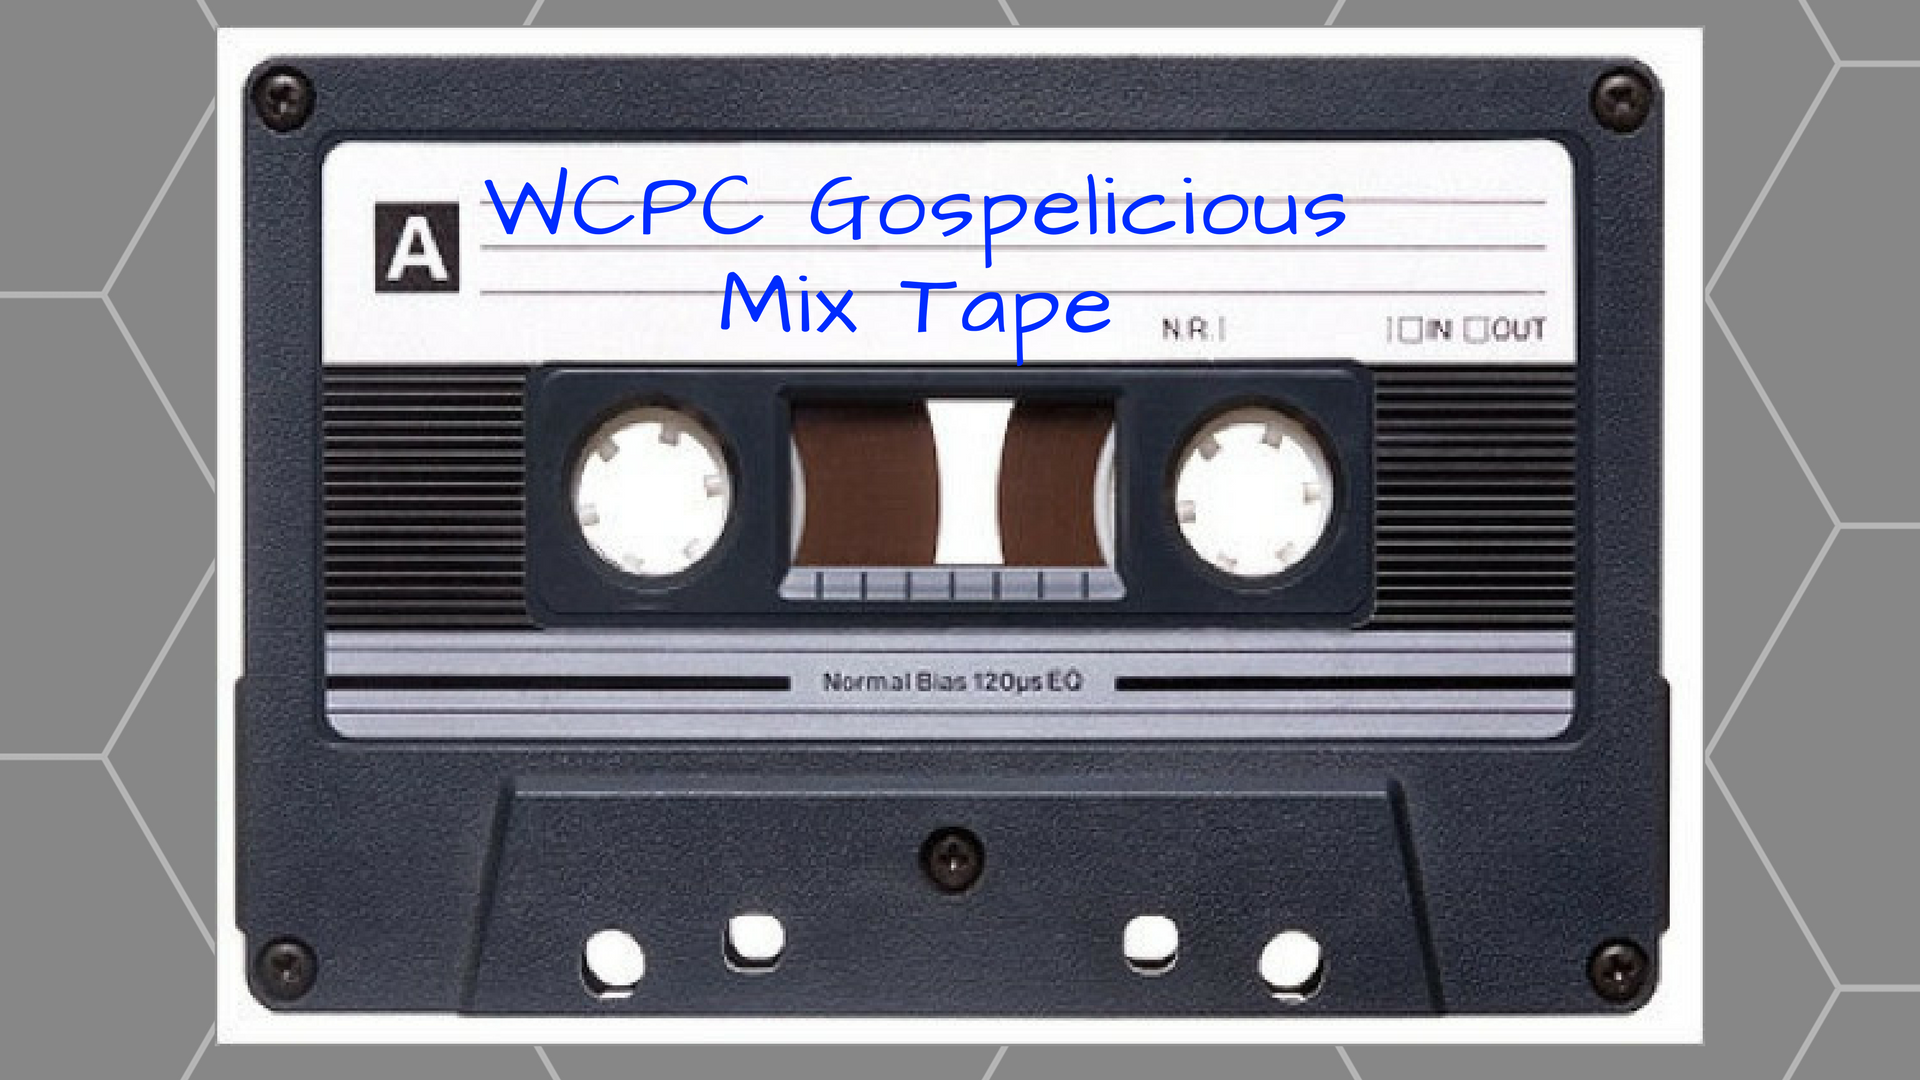 WCPC Gospelicious Mix Tape